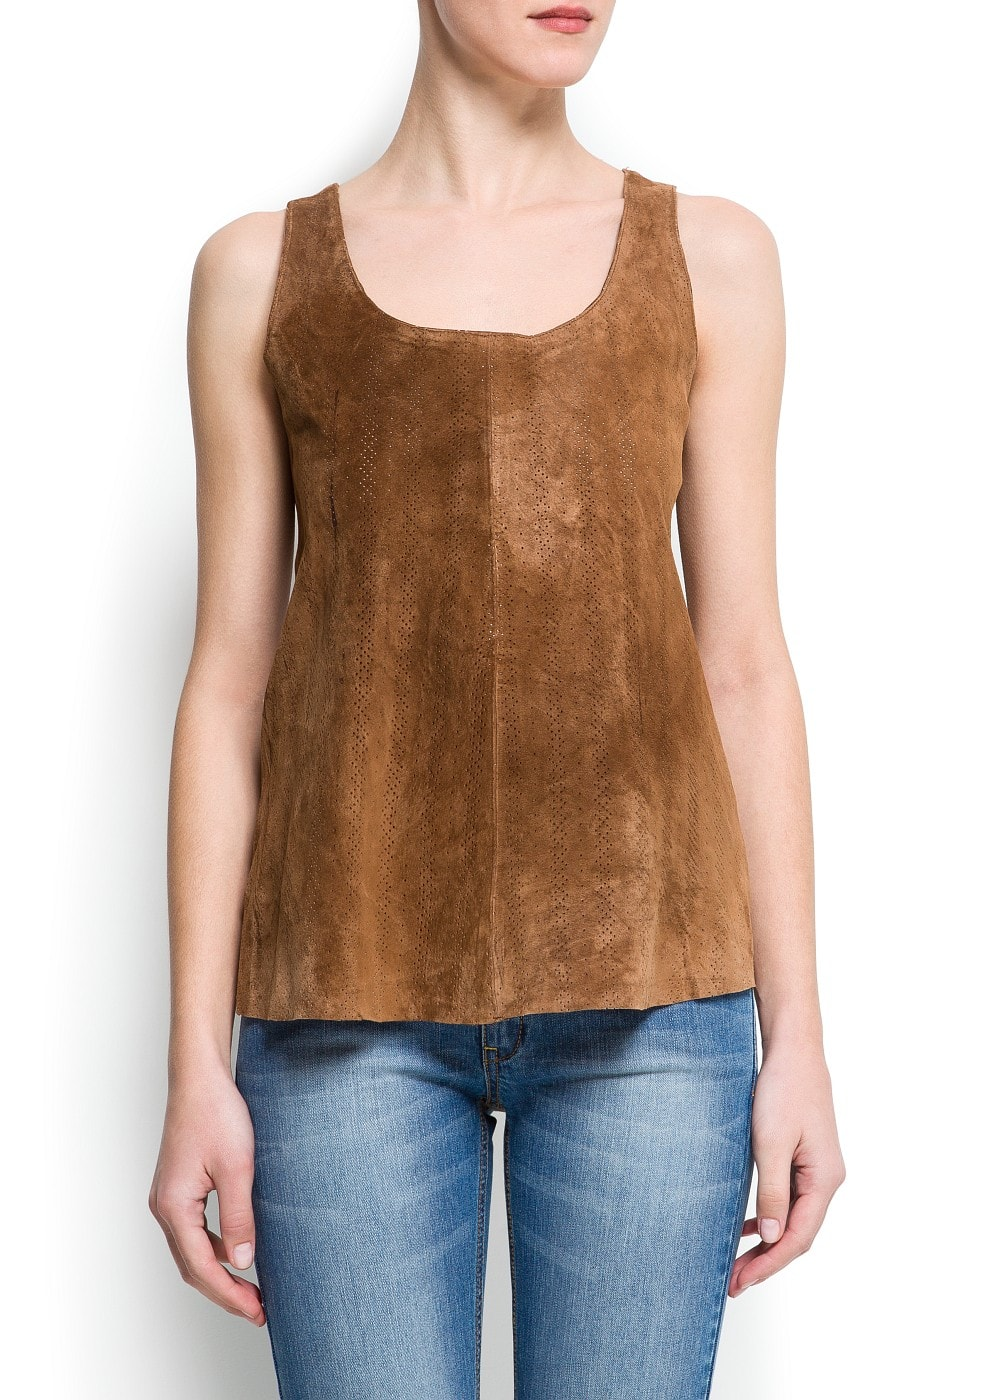 Perforated suede top